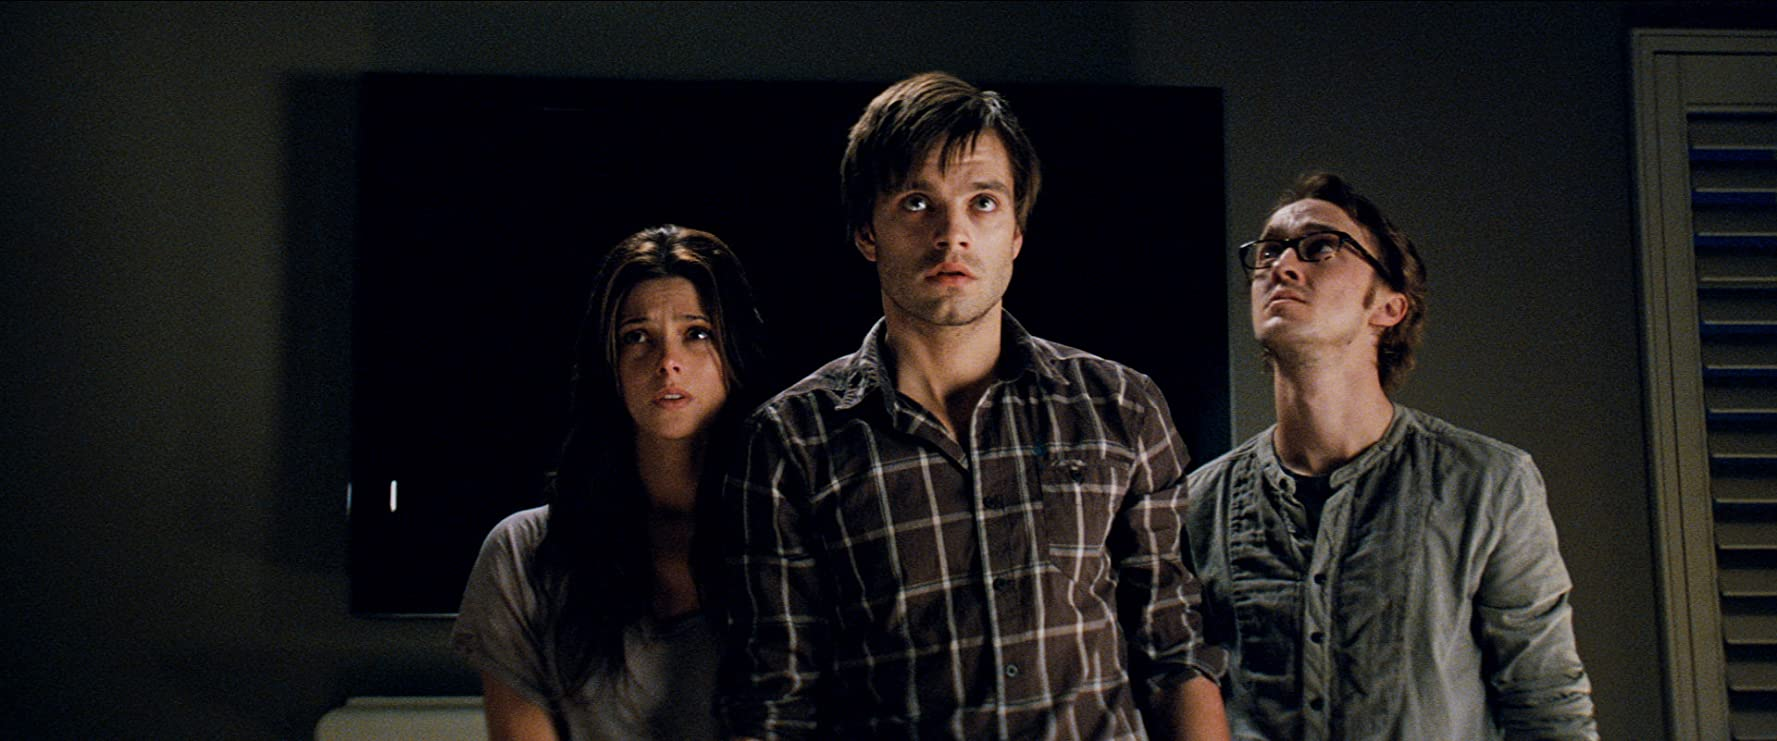 Tom Felton, Sebastian Stan, and Ashley Greene in The Apparition (2012)